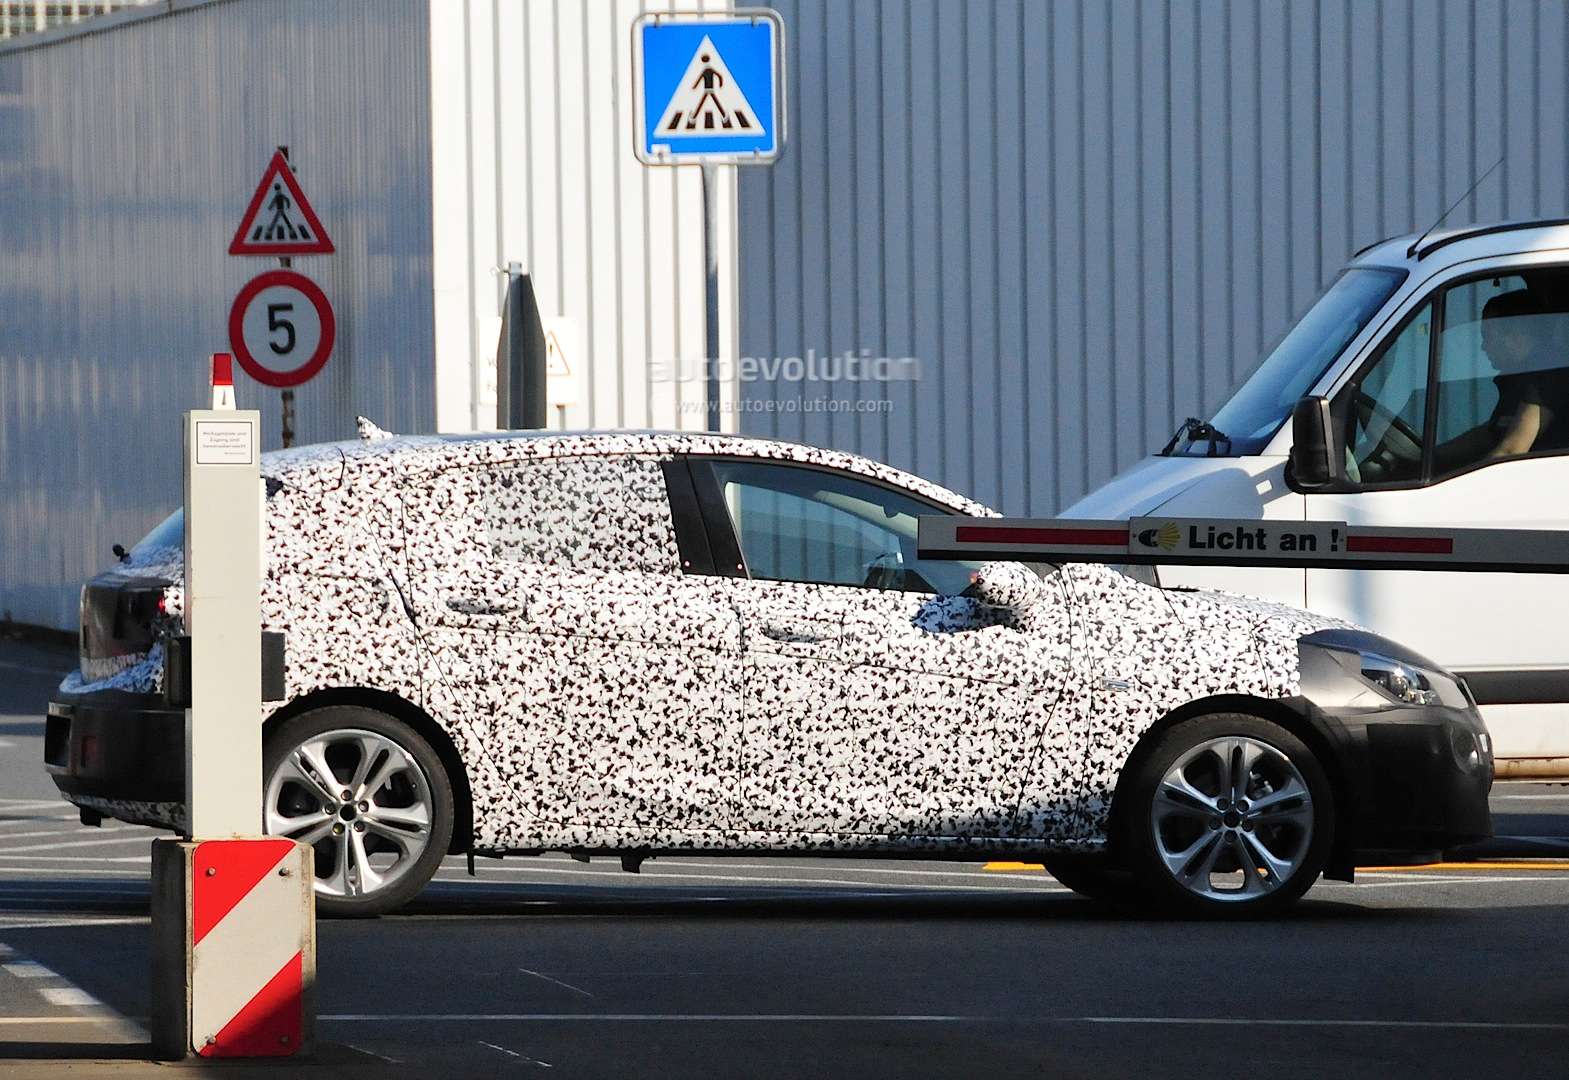 [2015] Opel ASTRA K New-opel-astra-k-7th-generation-spied-in-detail-photo-gallery_11